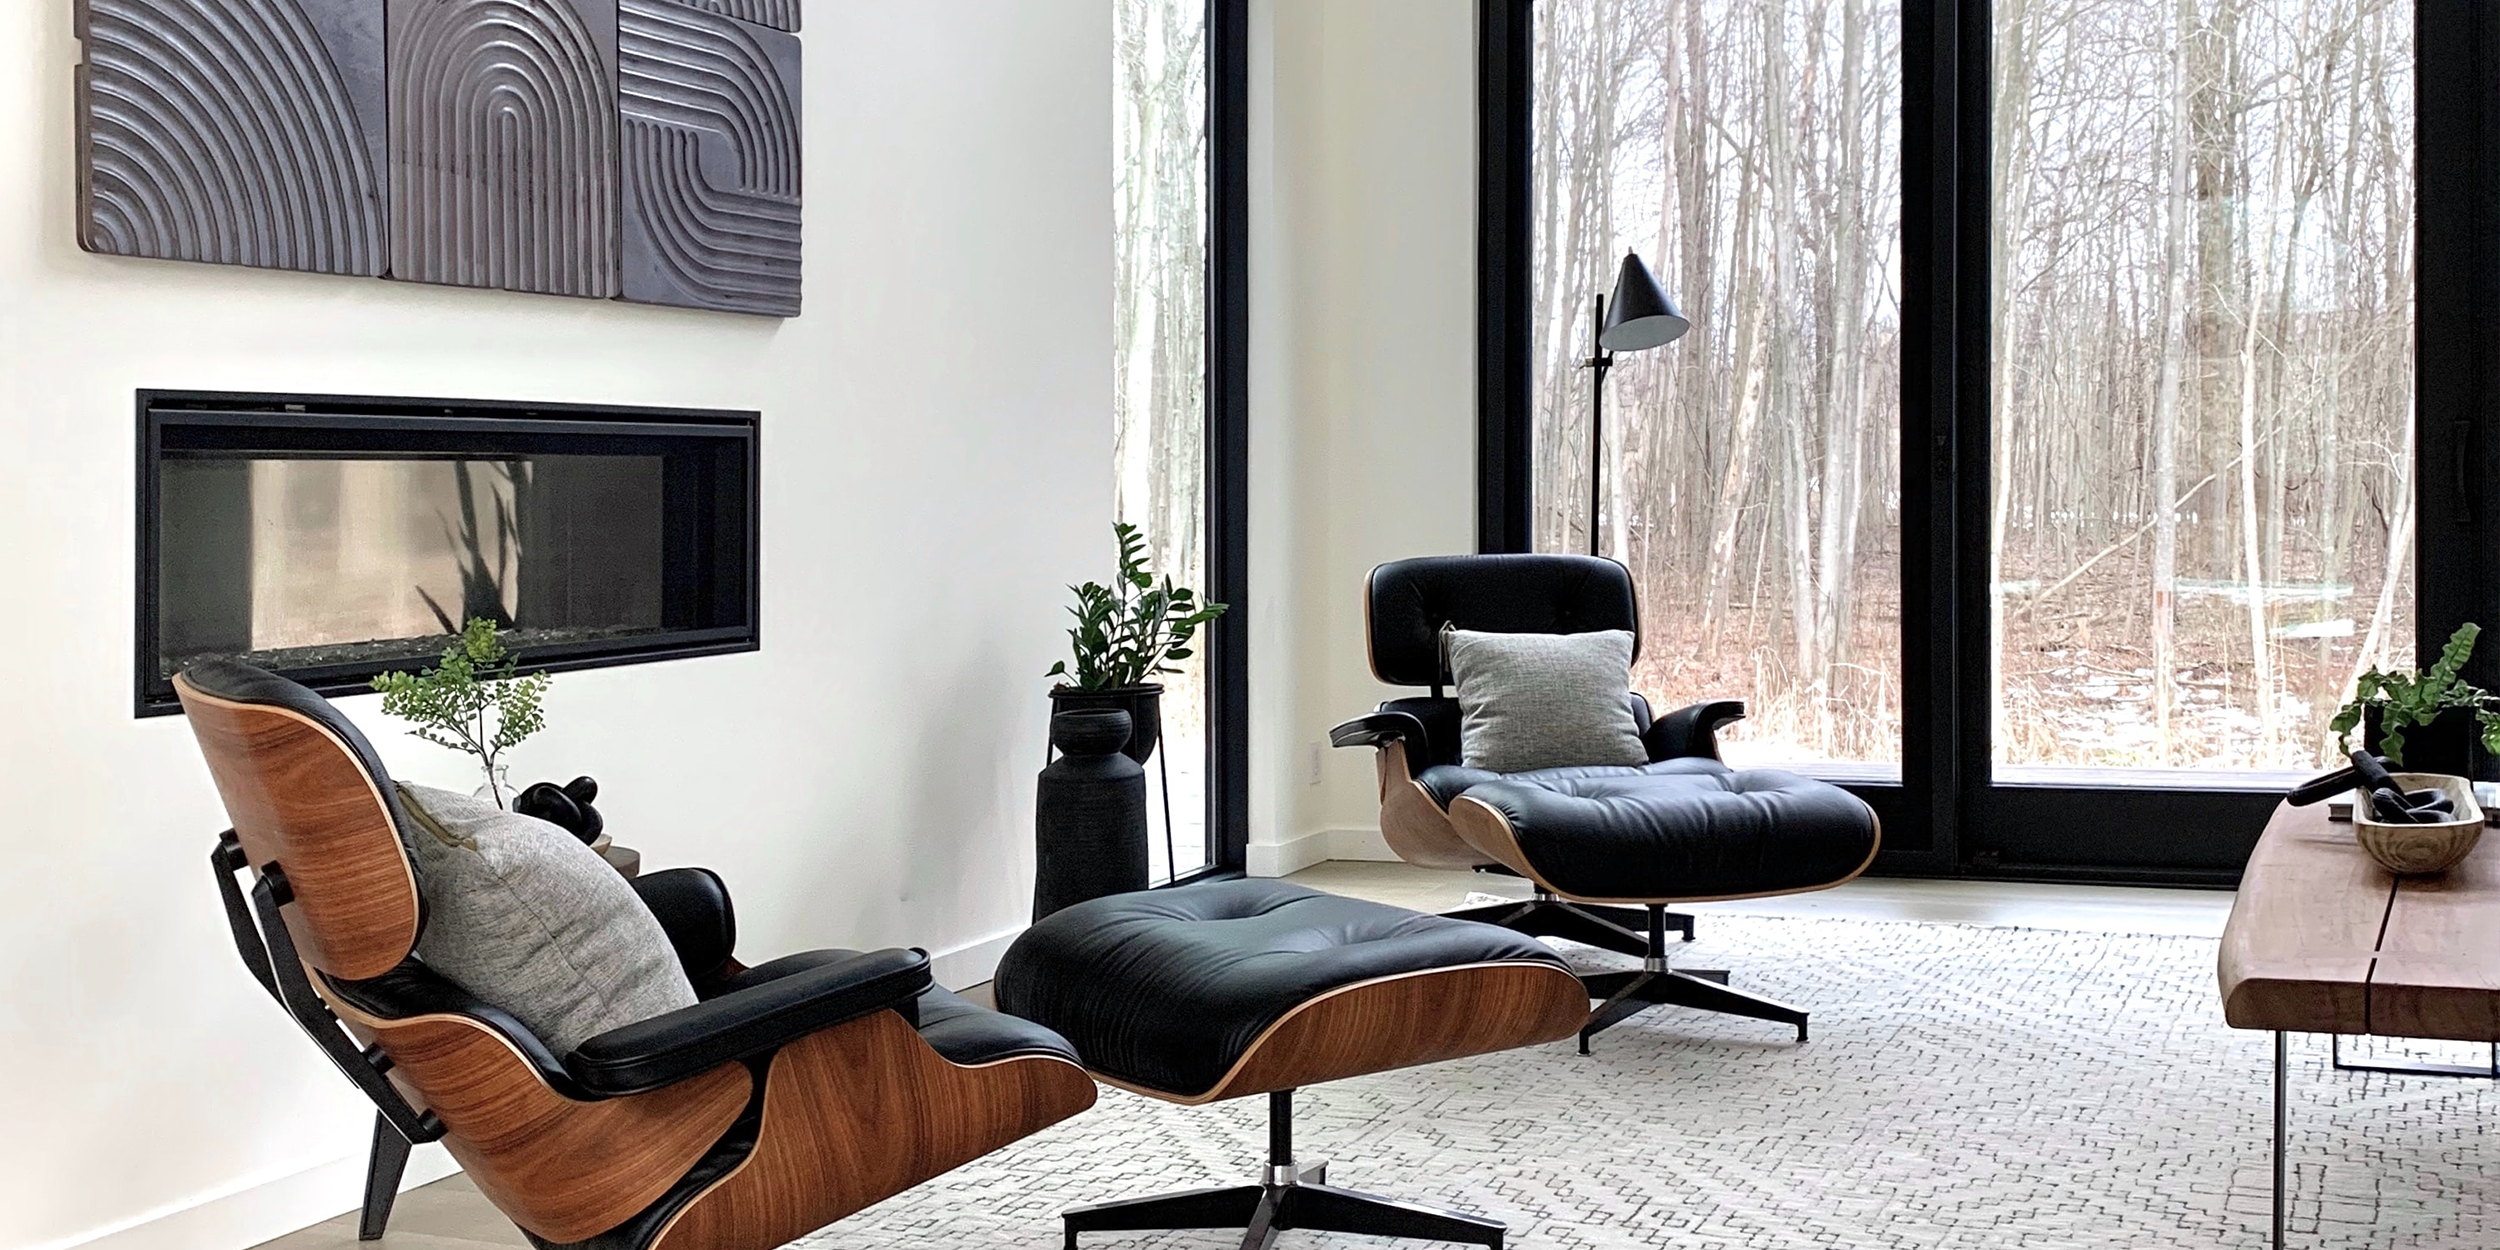 Eames Lounge Chair featured in a living interior